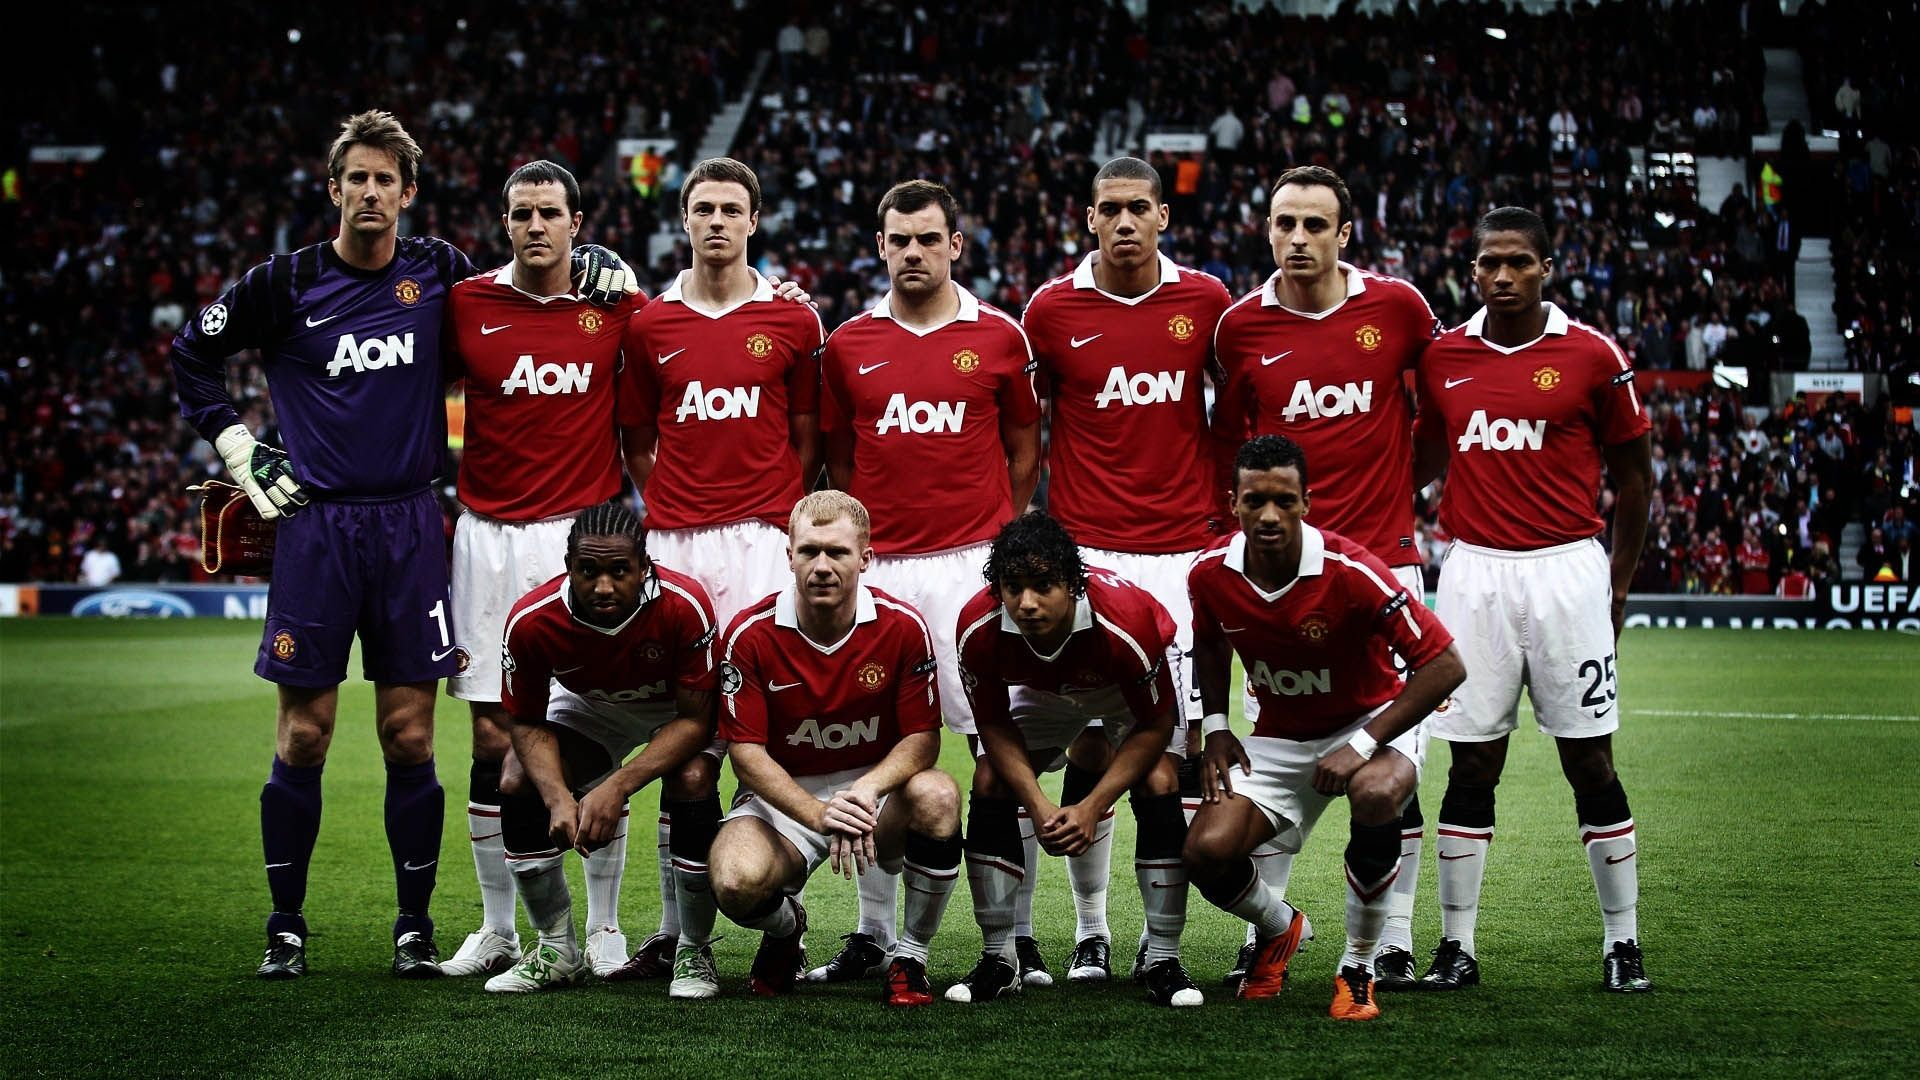 Man United Team Manchester United Wallpaper Manchester United Manchester United Soccer